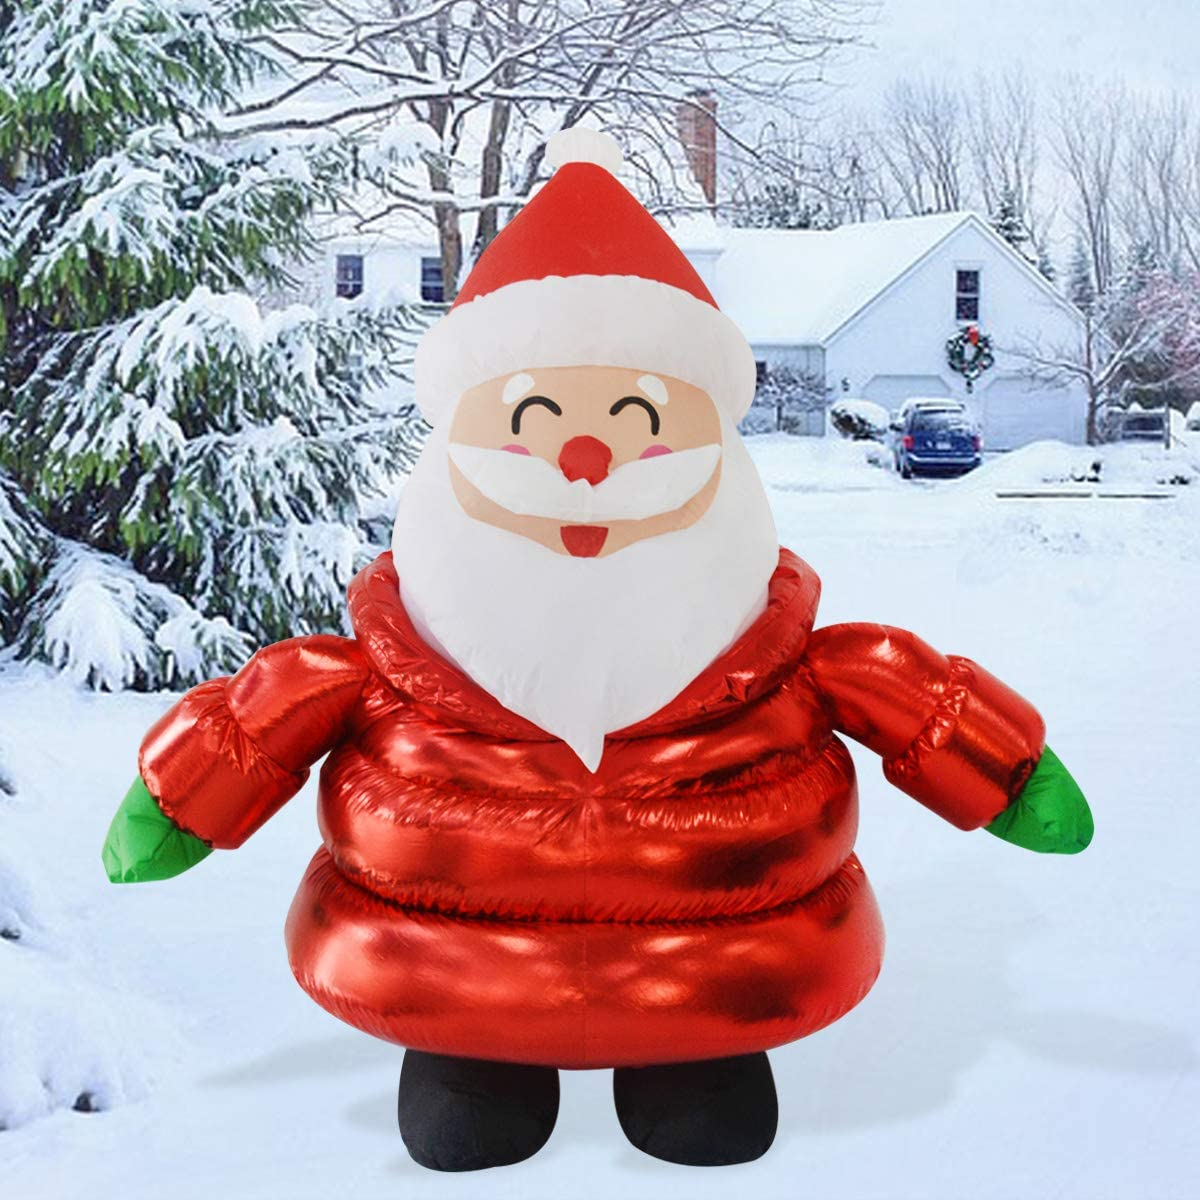 GOOSH 5Foot High Christmas Inflatable Blow up Down-Filled Coat Santa Claus Holiday Yard Decoration, Indoor Outdoor Garden Christmas Decoration.